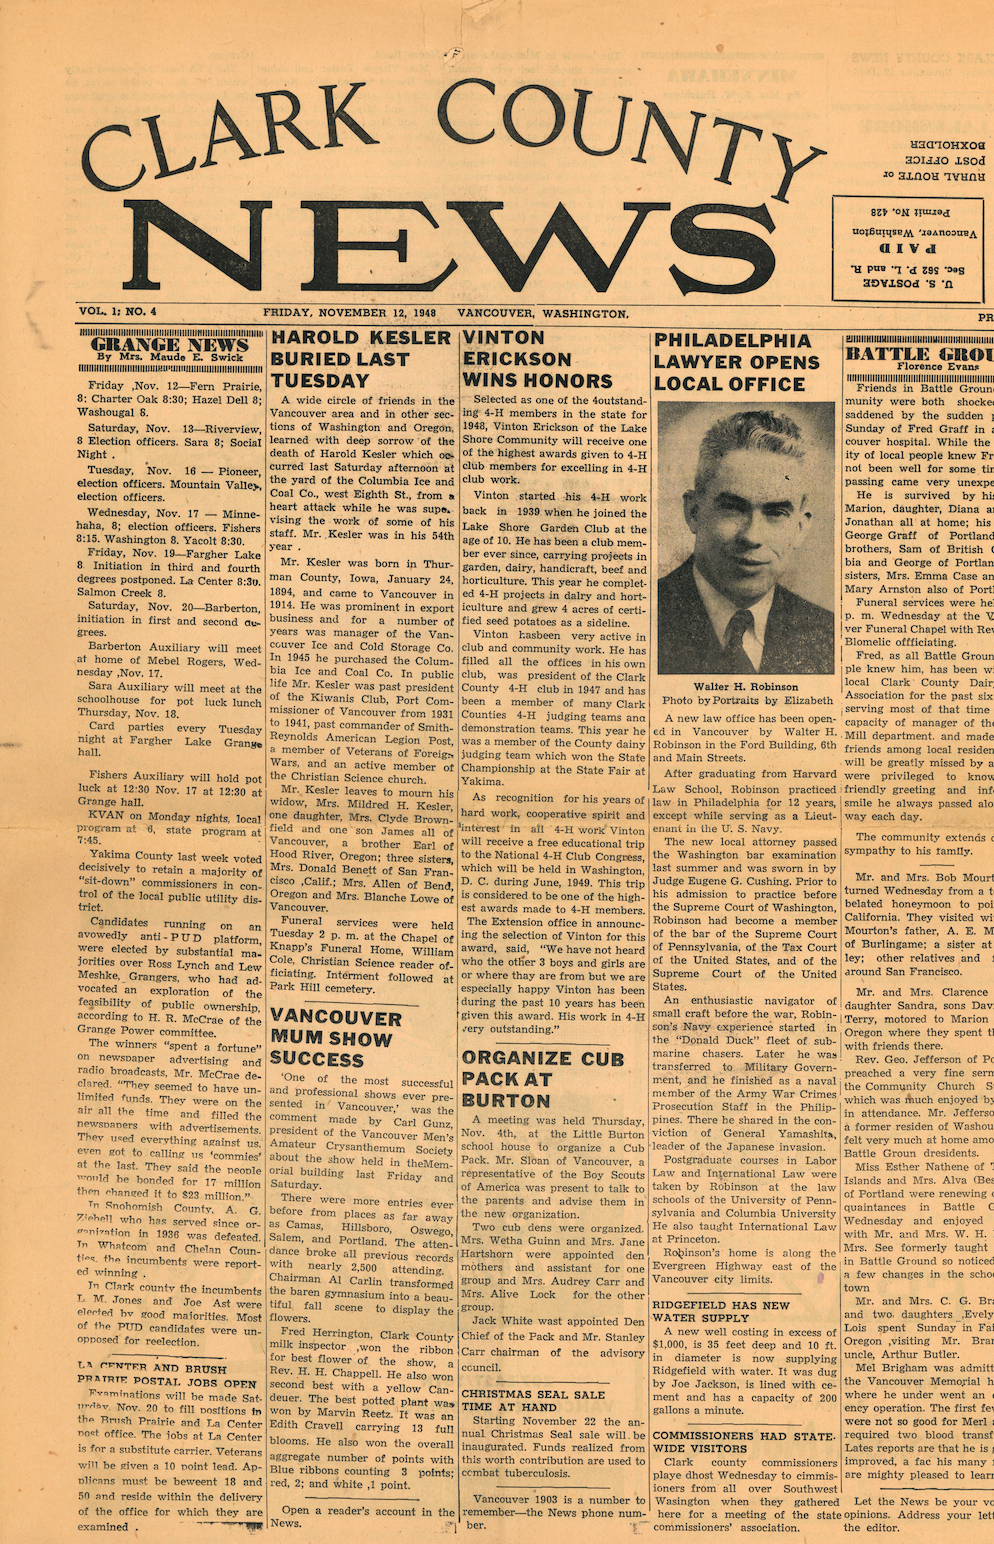 """Clark County News  article, """"Philadelphia Lawyer Opens Local Office,"""" detailing the establishment of Robinson & Morse—now known as Landerholm, P.S. Published November 12, 1948."""